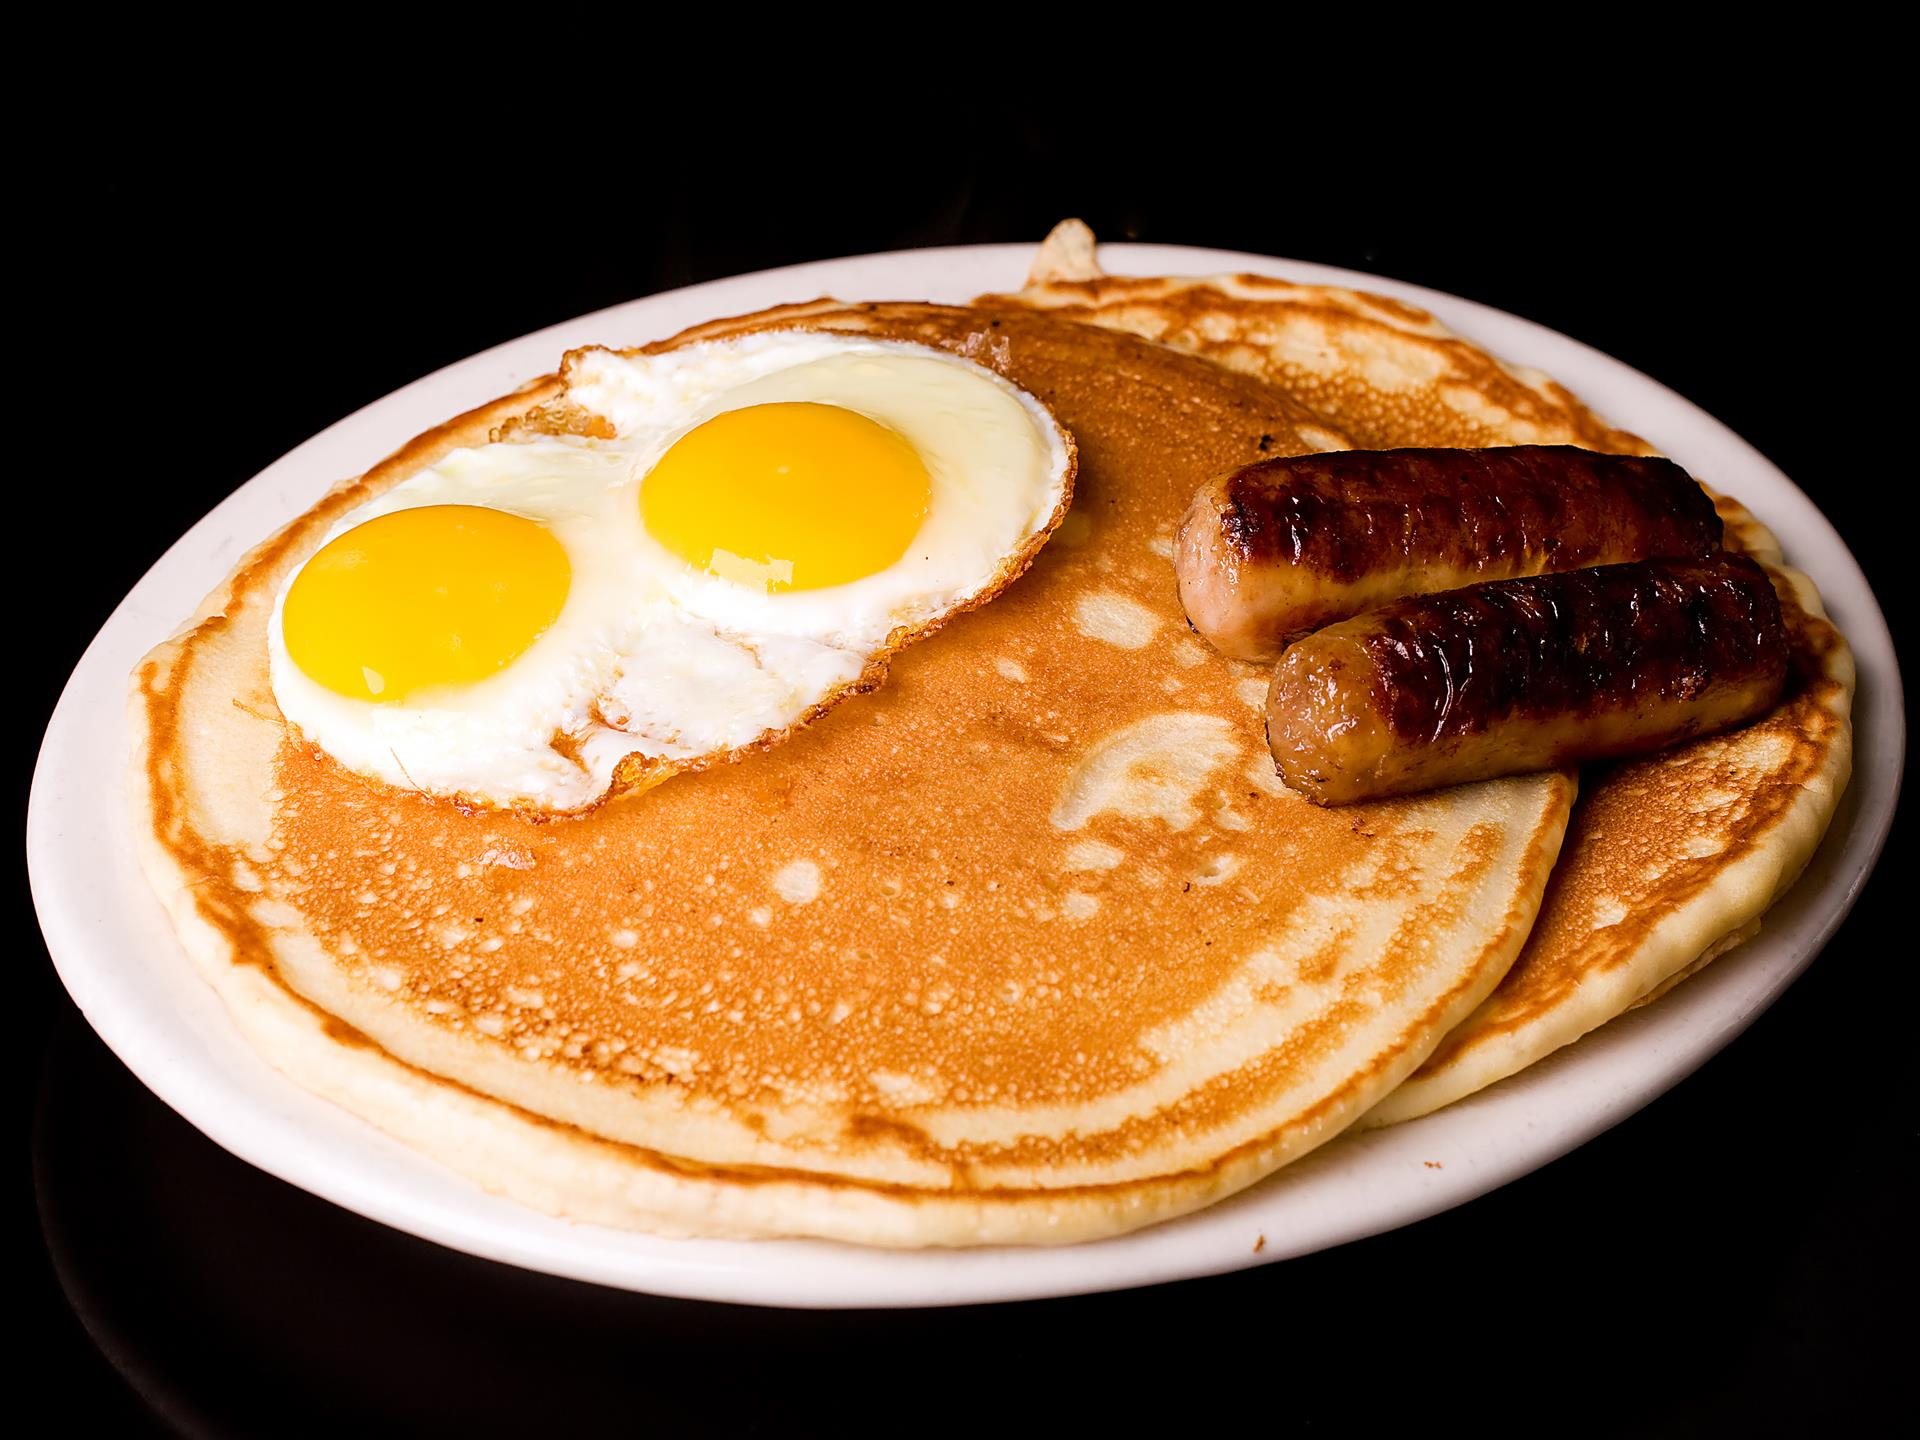 pancakes, eggs and sausage